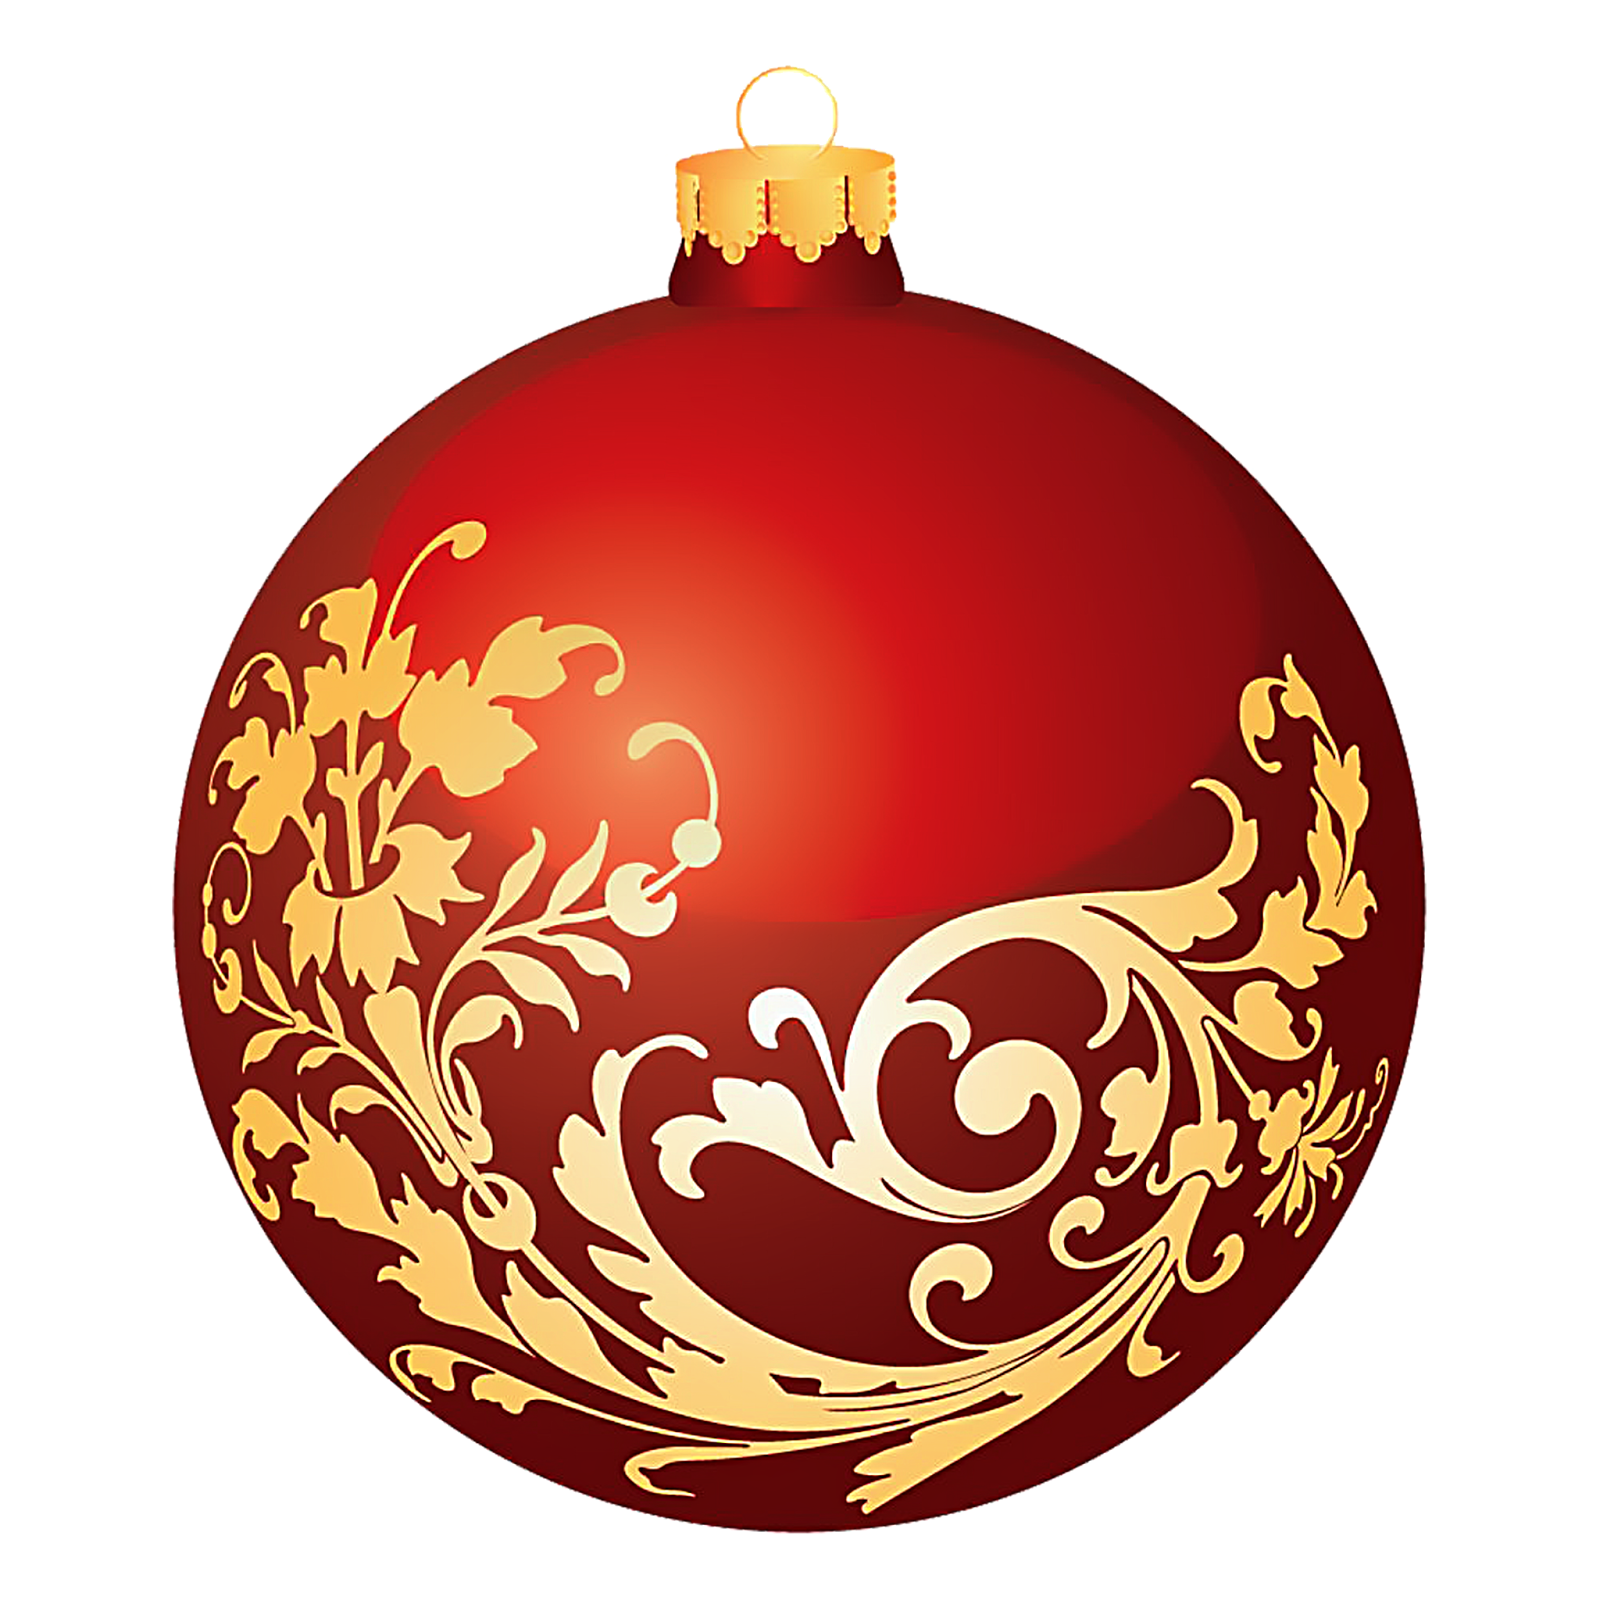 Download Christmas Balls Clipart HQ PNG Image.